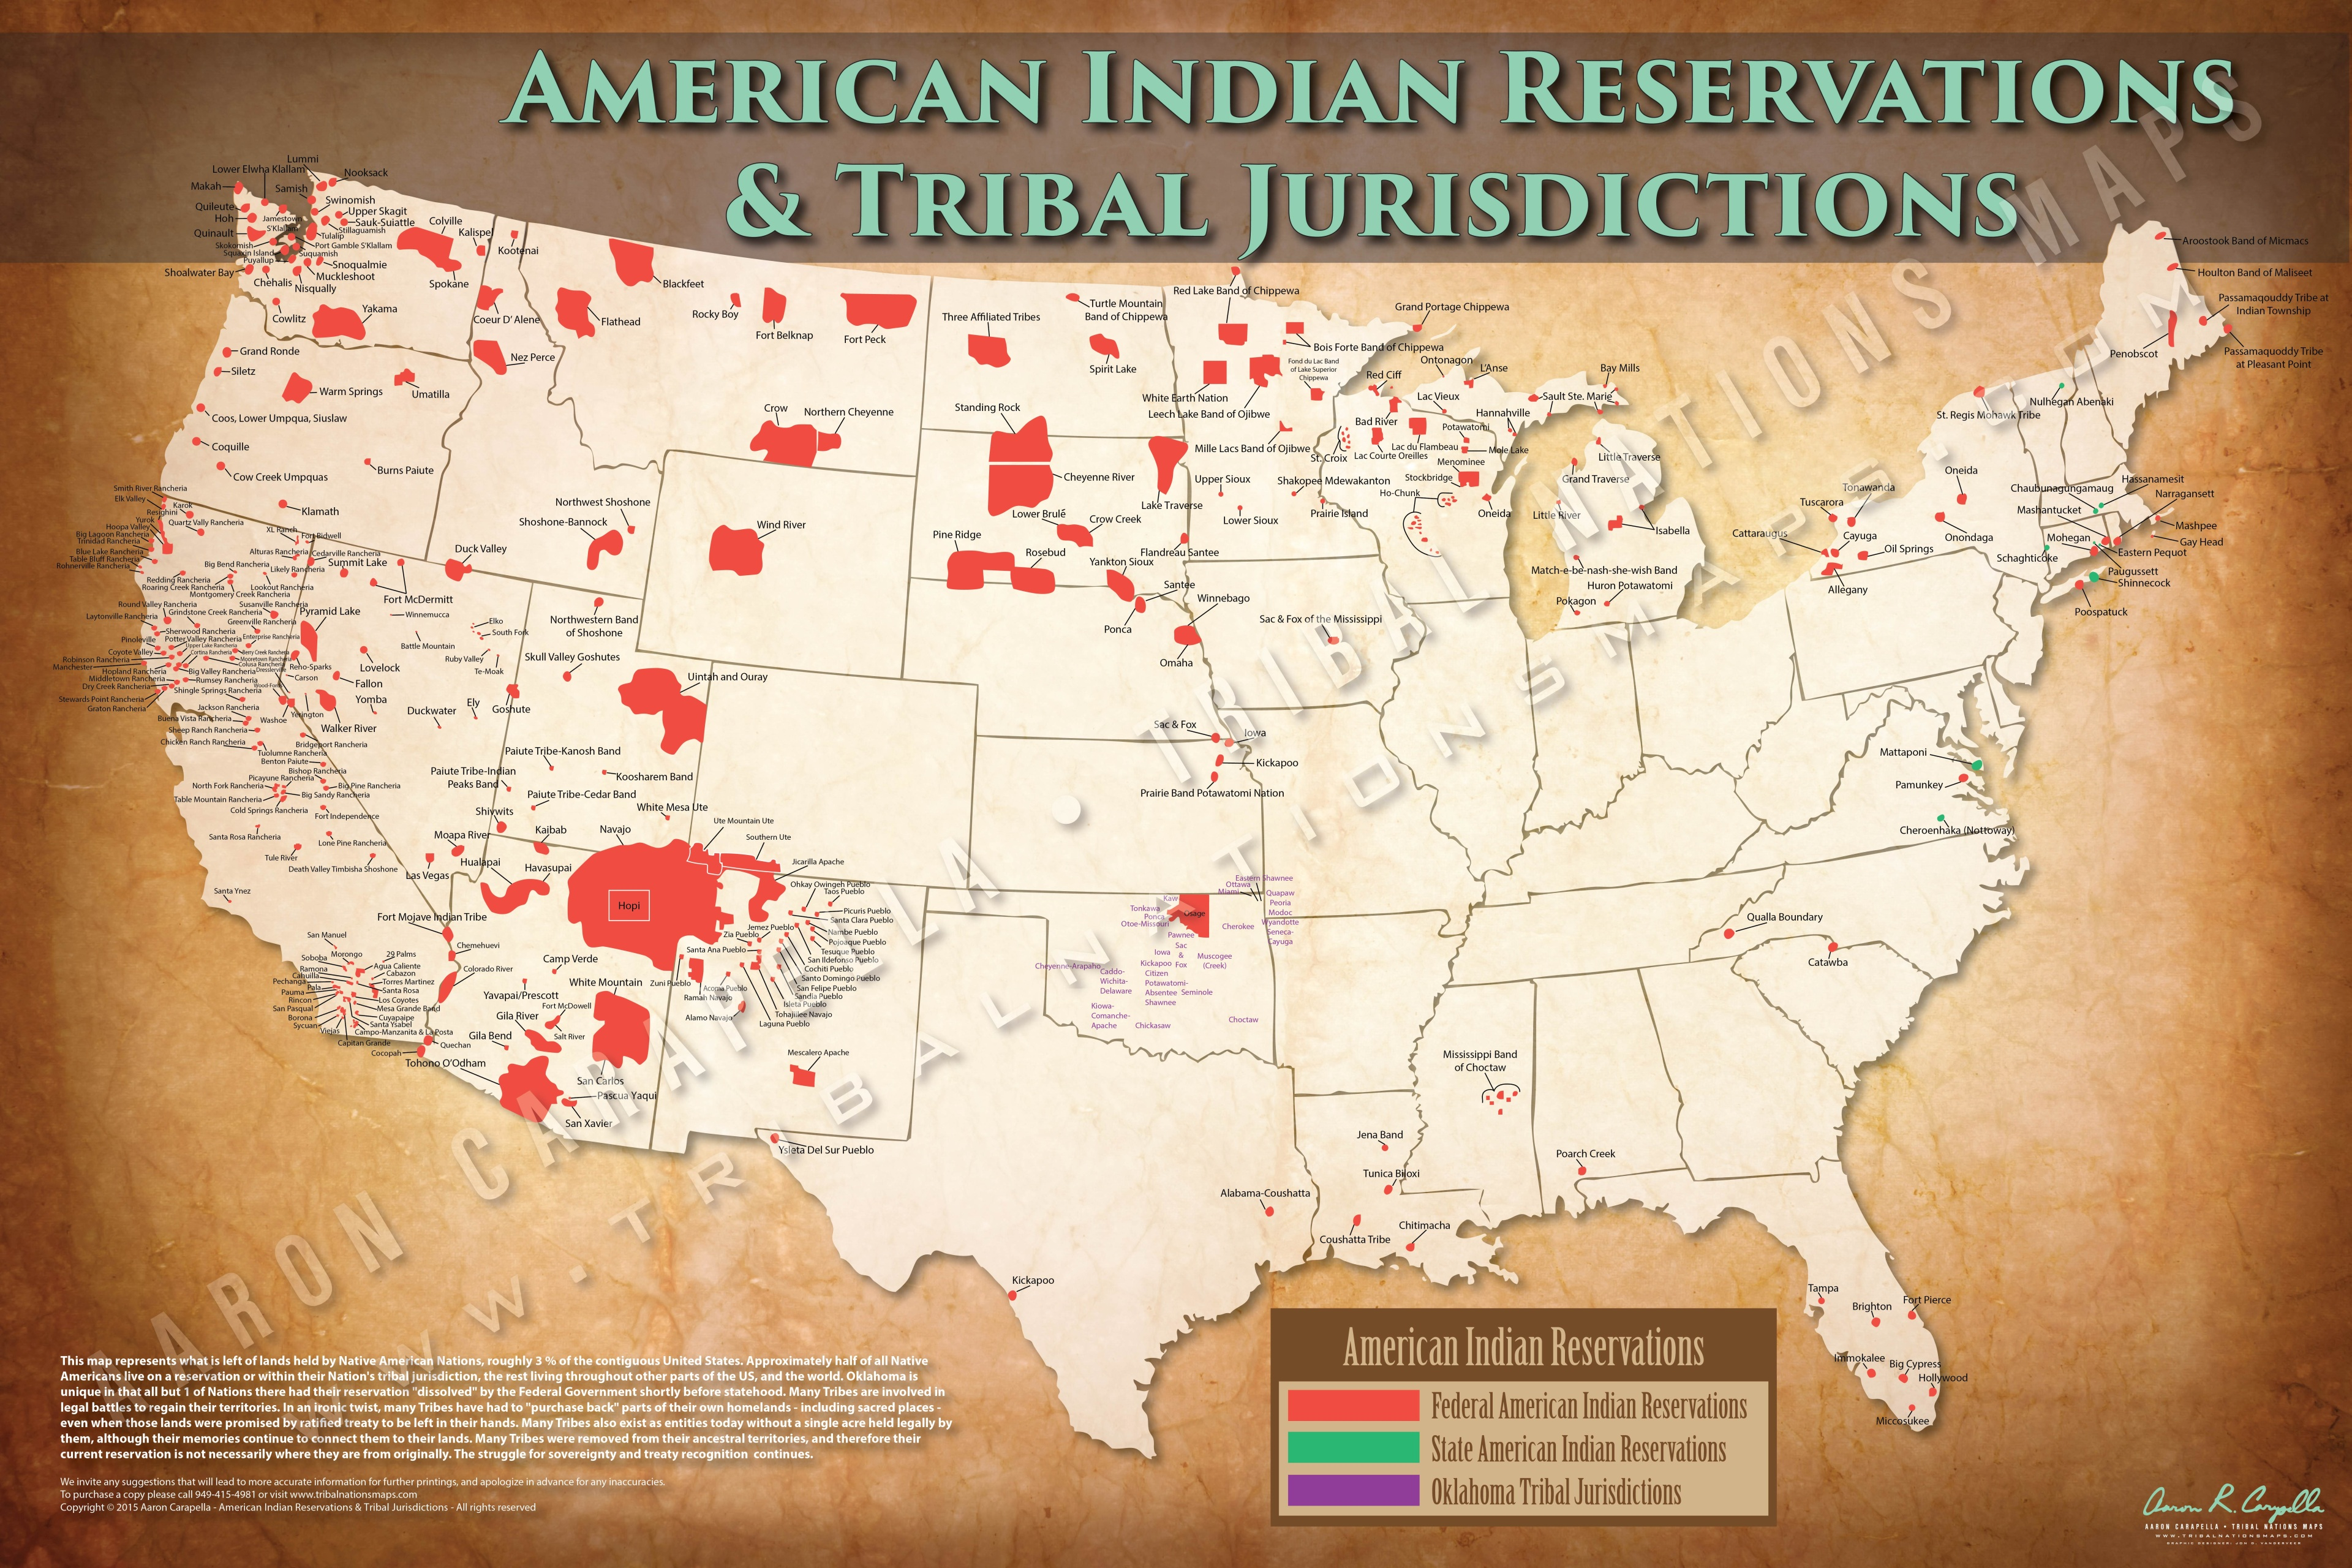 American Indian Reservations Map w/ Reservation Names - 24